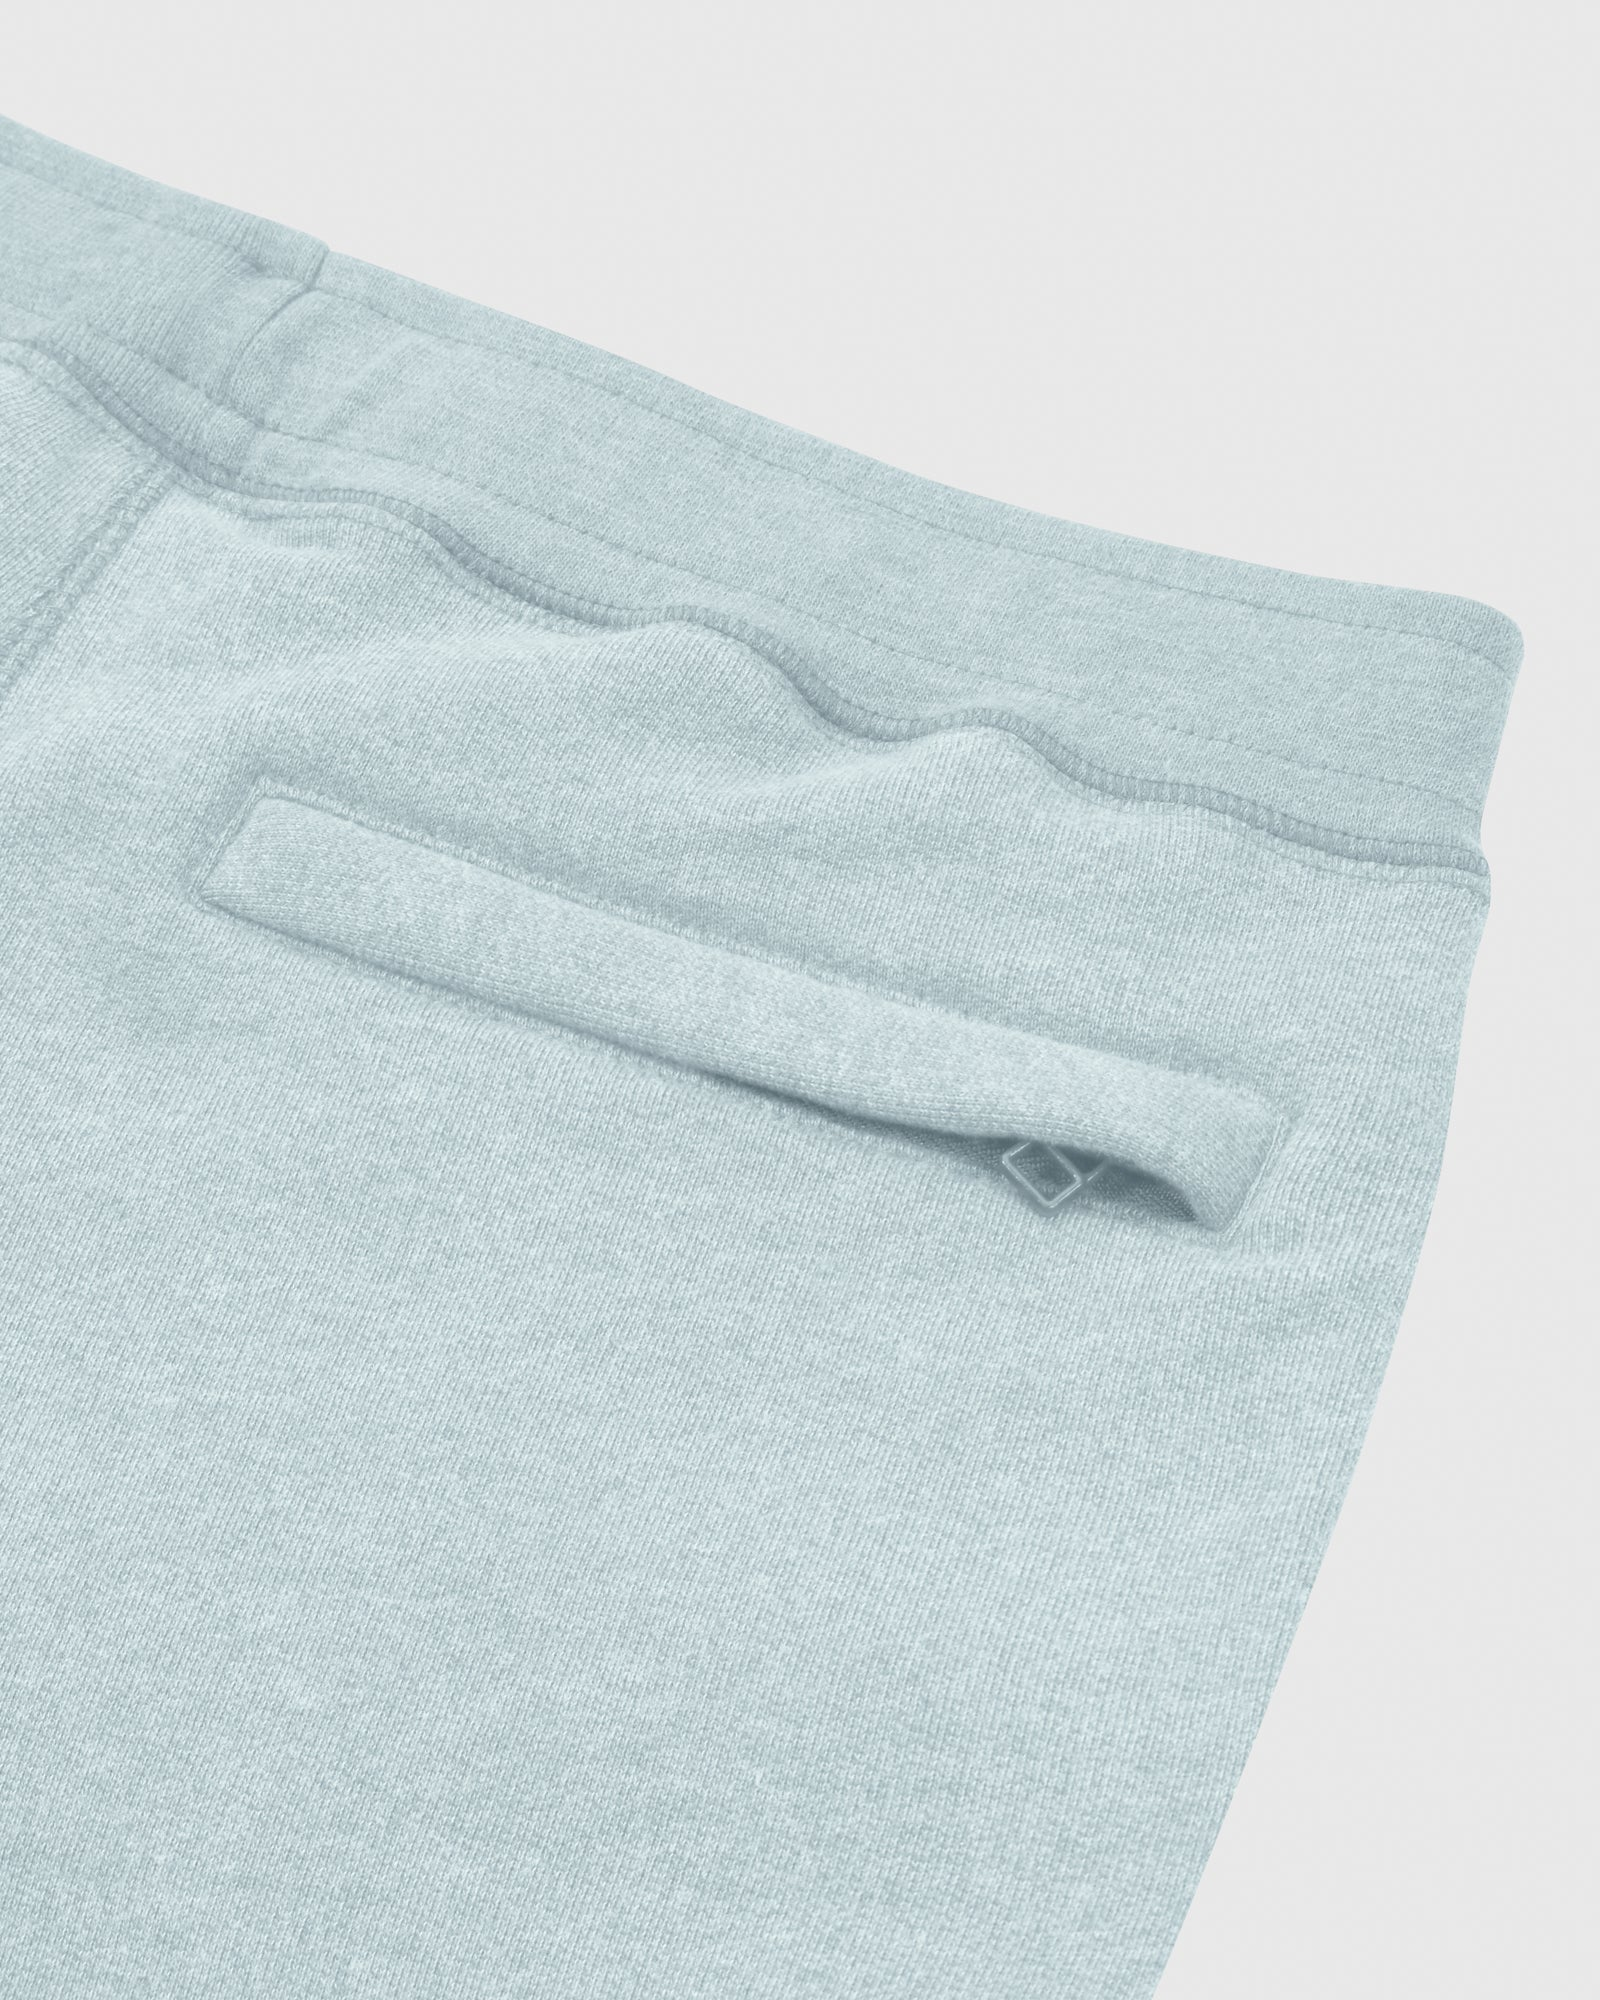 OVO FRENCH TERRY SWEATPANT - HEATHER LIGHT BLUE IMAGE #6